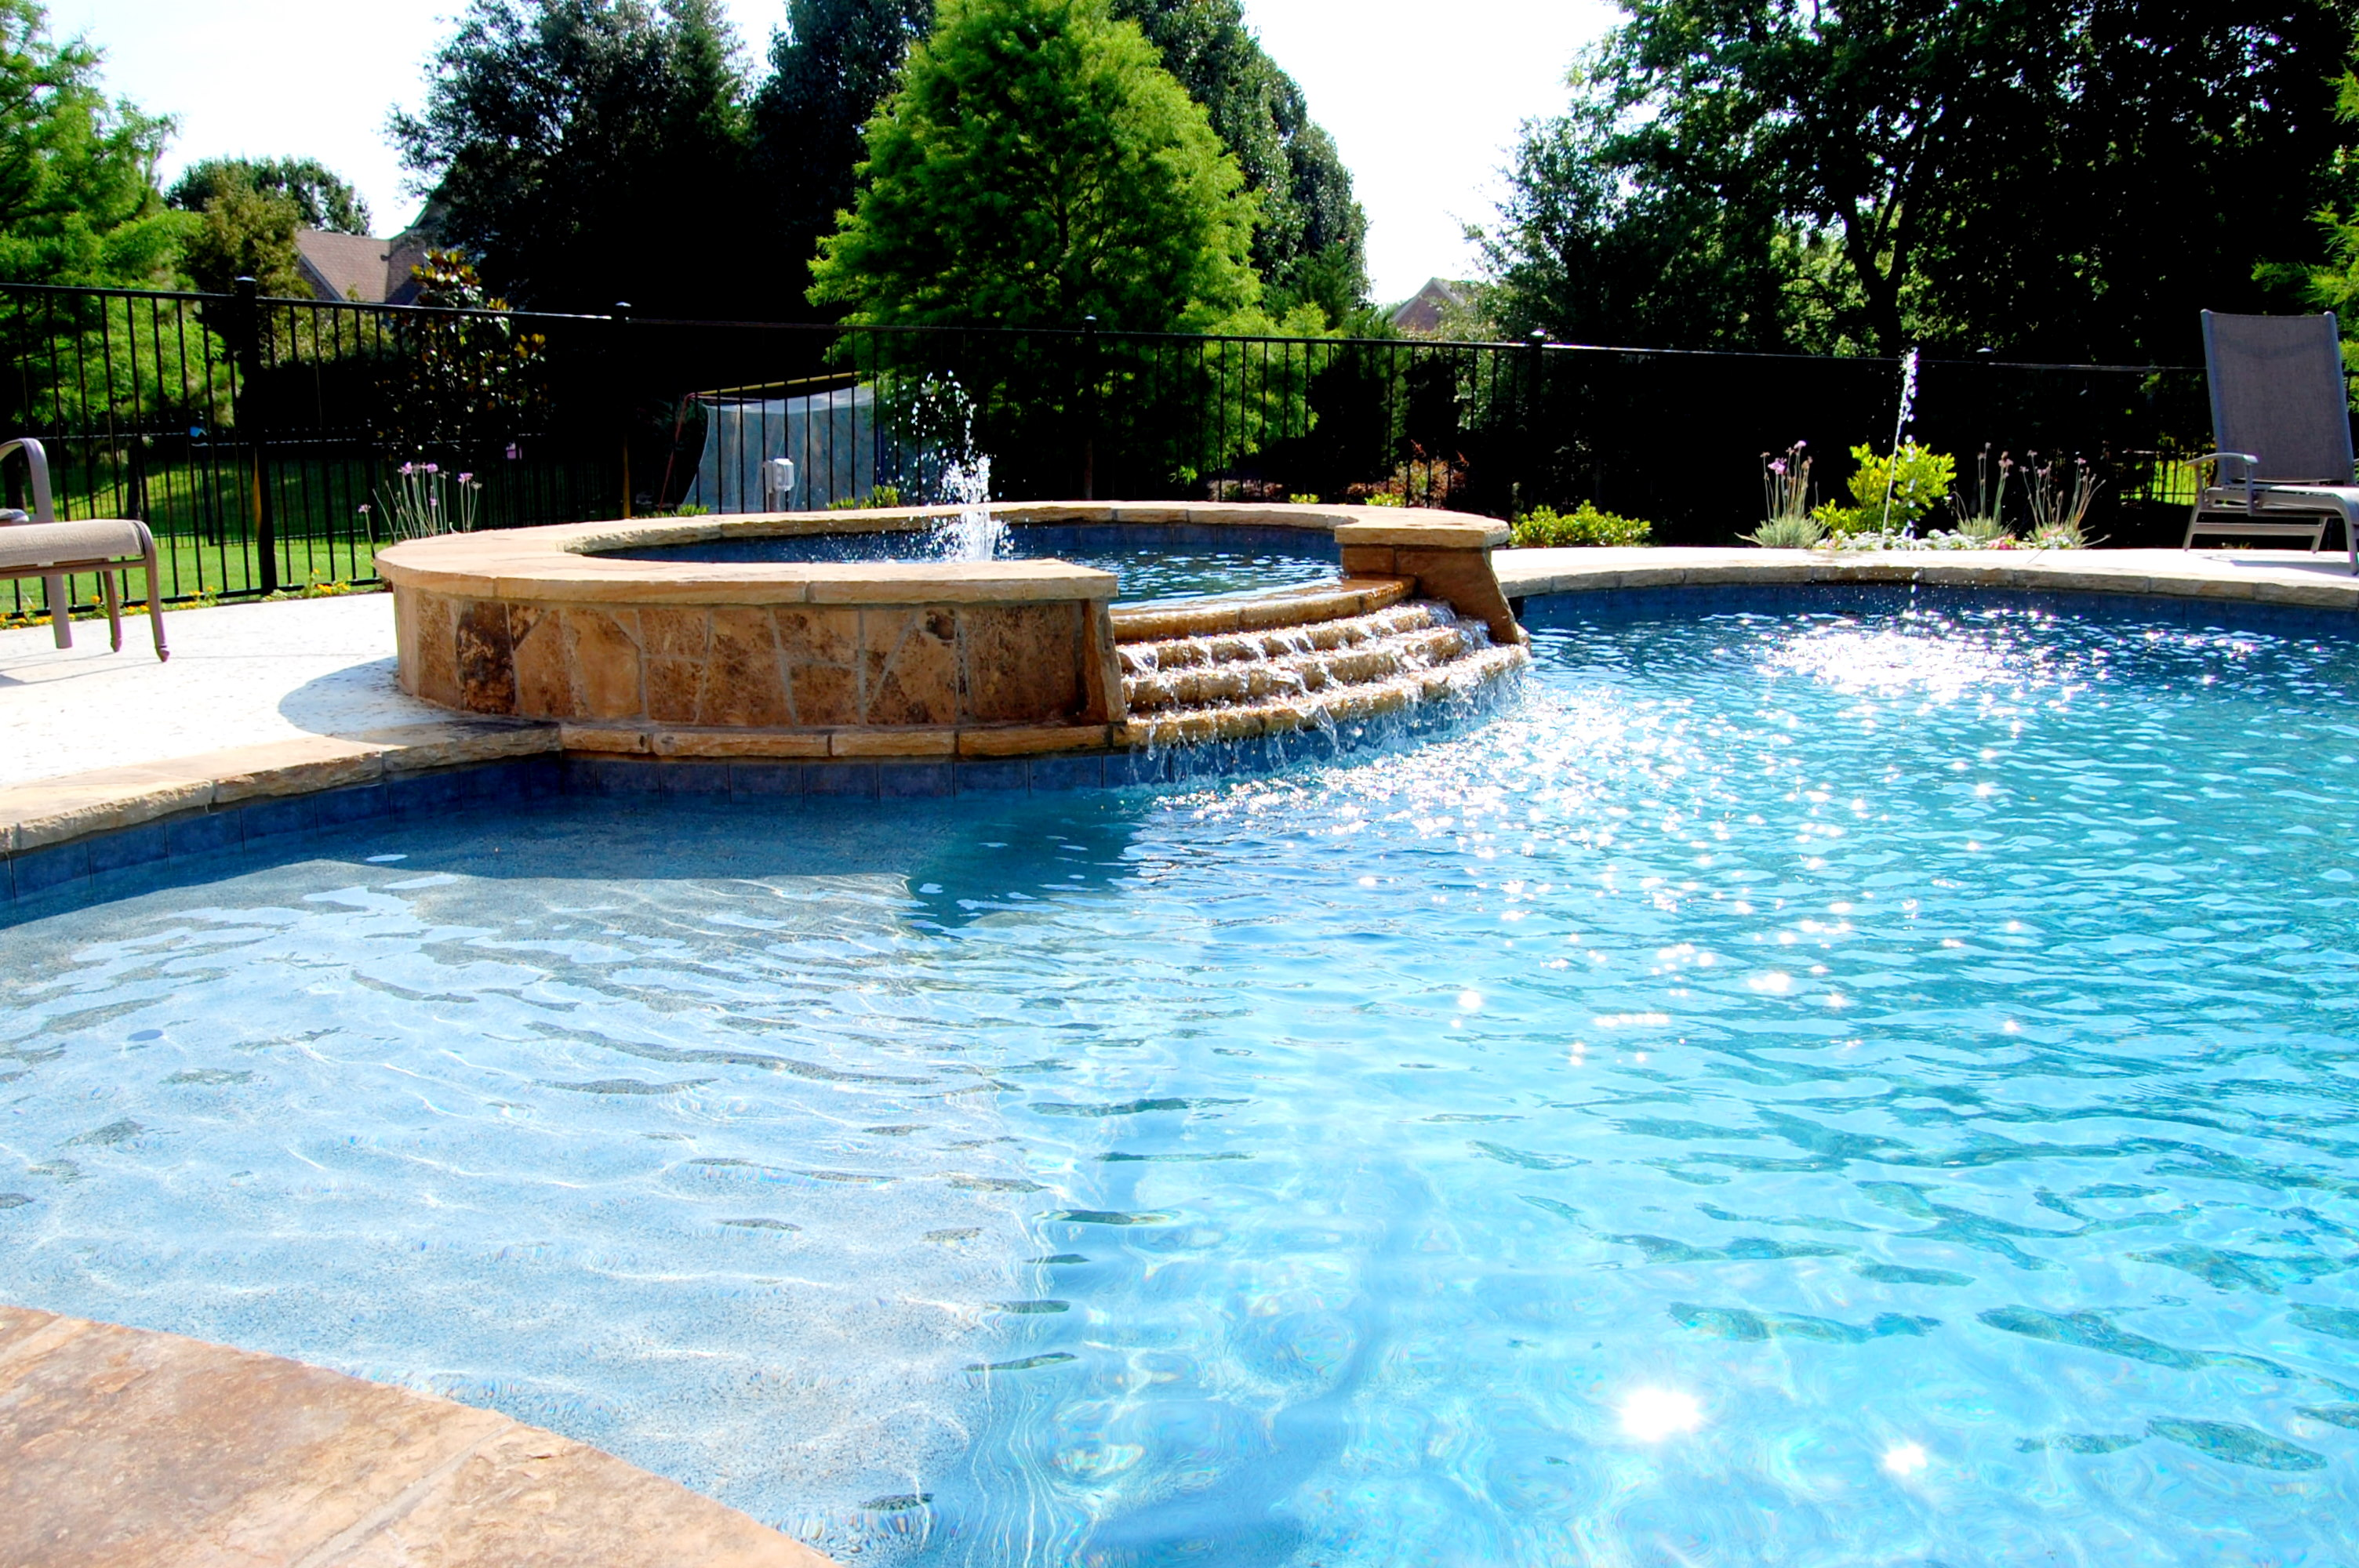 Pool cleaning service installation in arlington tx for Pool service